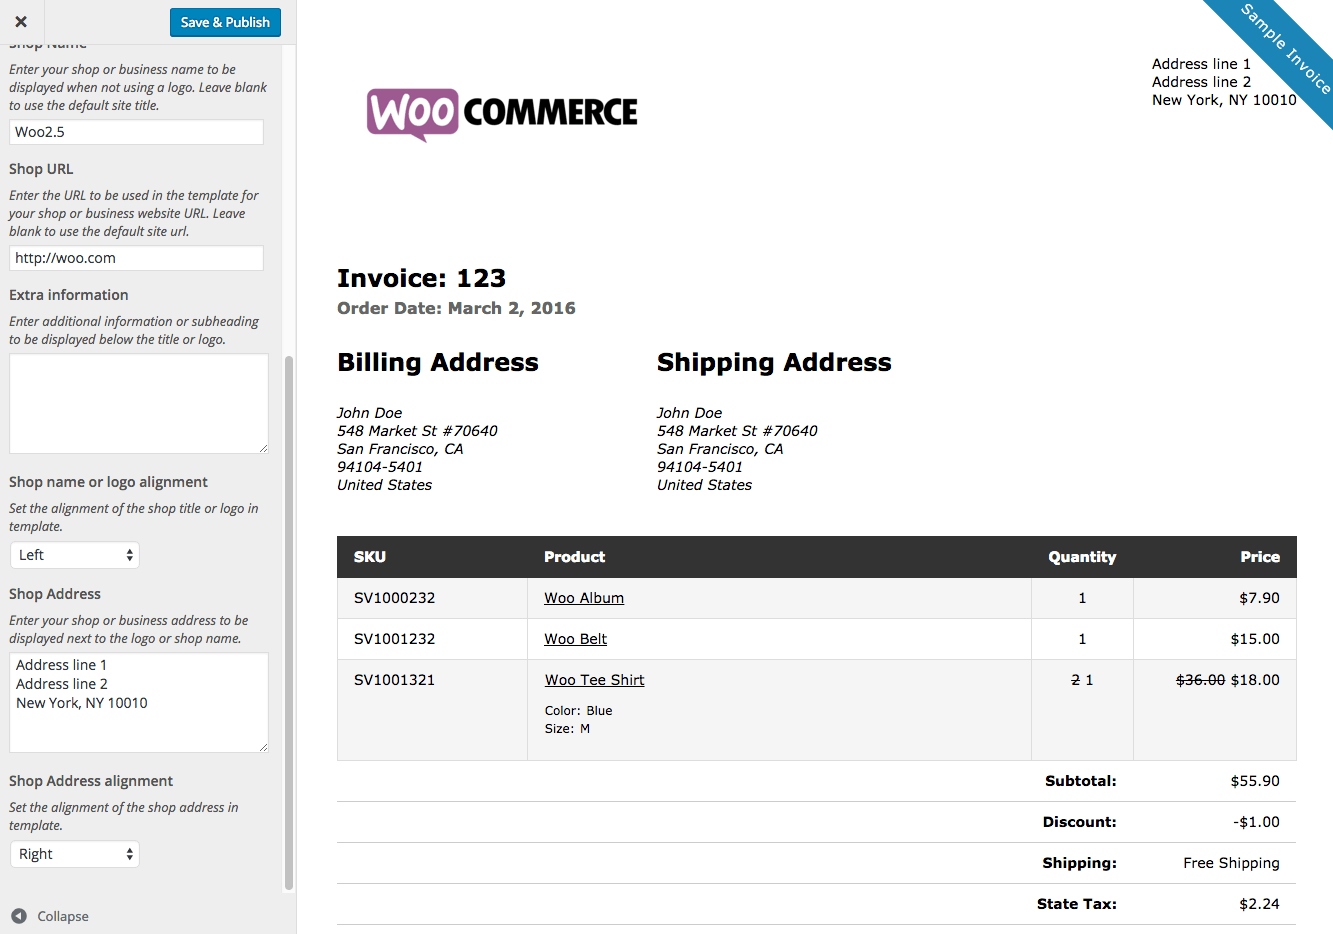 Centralasianshepherdus  Outstanding Print Invoices Amp Packing Lists  Woocommerce With Luxury Woocommerce Print Invoices  Packing Lists Customizer With Enchanting Invoice Format In Word Also How To Write Out A Invoice In Addition Xero Import Invoices And Example Of A Proforma Invoice As Well As Good Invoice Template Additionally Credit Invoice Sample From Woocommercecom With Centralasianshepherdus  Luxury Print Invoices Amp Packing Lists  Woocommerce With Enchanting Woocommerce Print Invoices  Packing Lists Customizer And Outstanding Invoice Format In Word Also How To Write Out A Invoice In Addition Xero Import Invoices From Woocommercecom